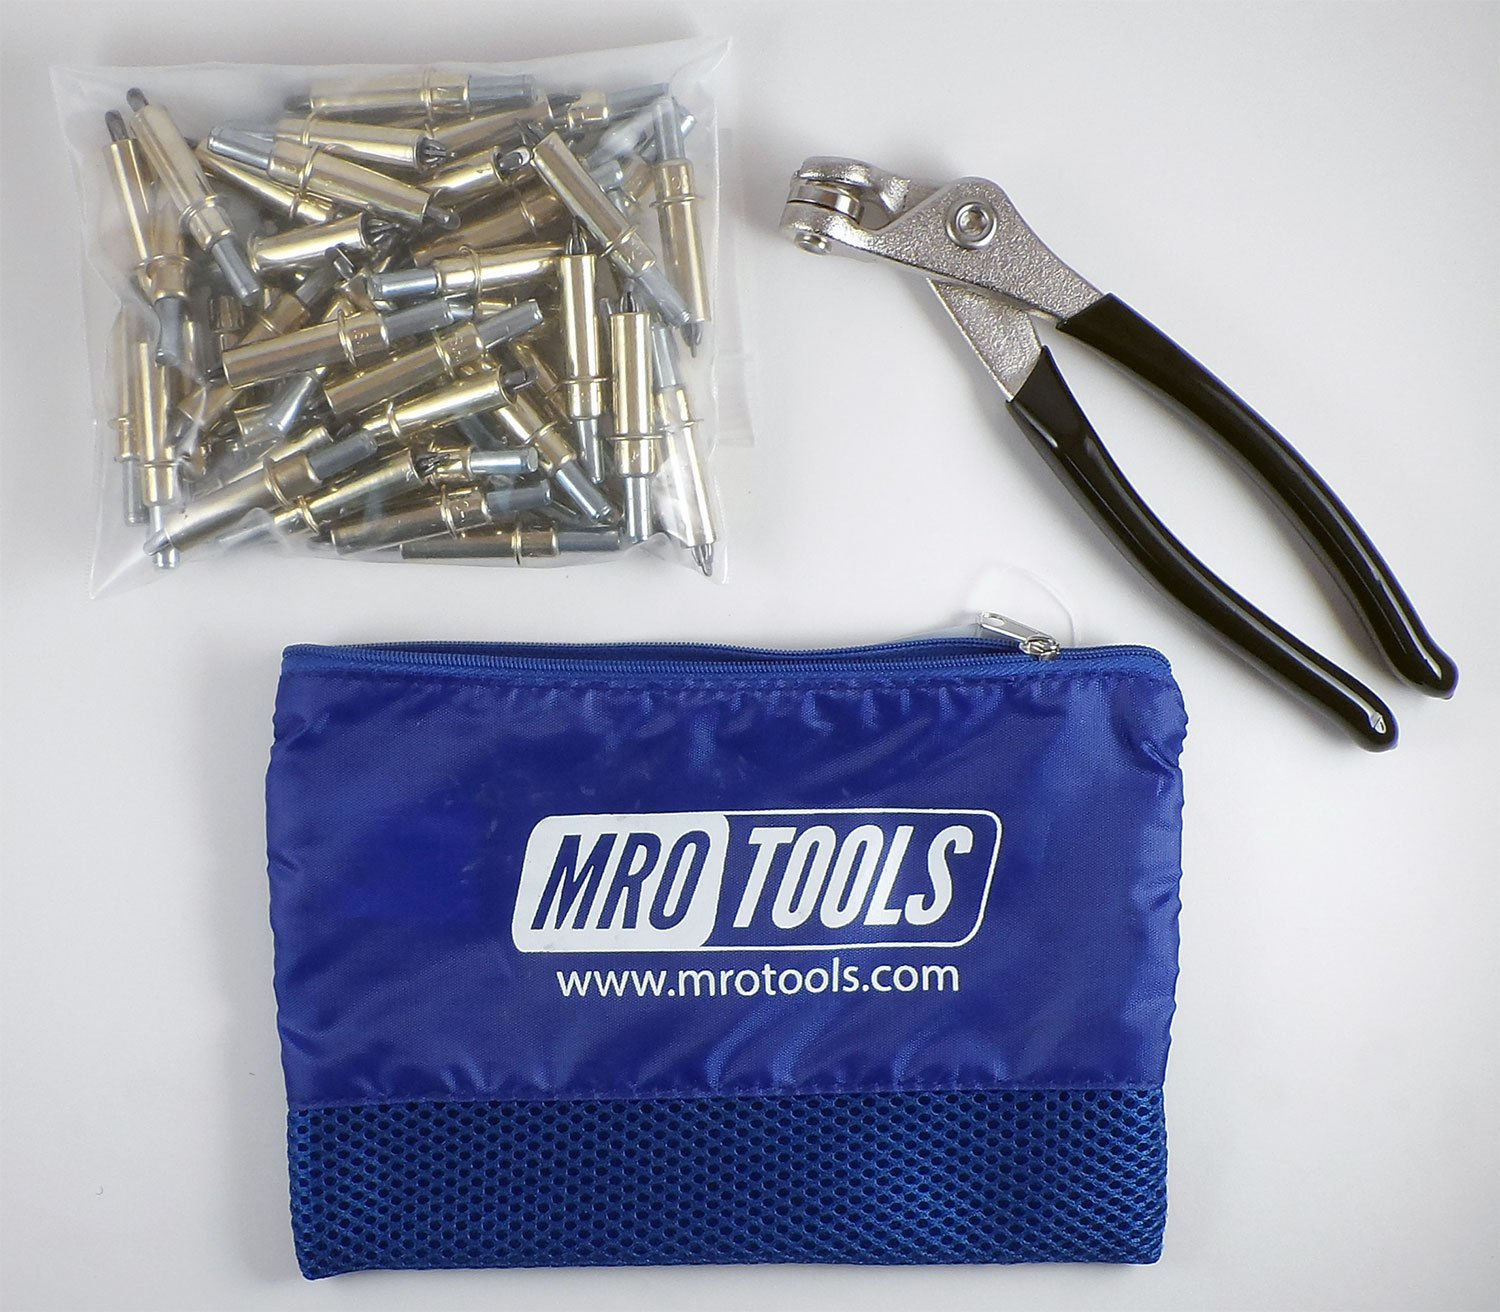 50 3/16 Cleco Sheet Metal Fasteners + Cleco Pliers w/Carry Bag (K1S50-3/16)